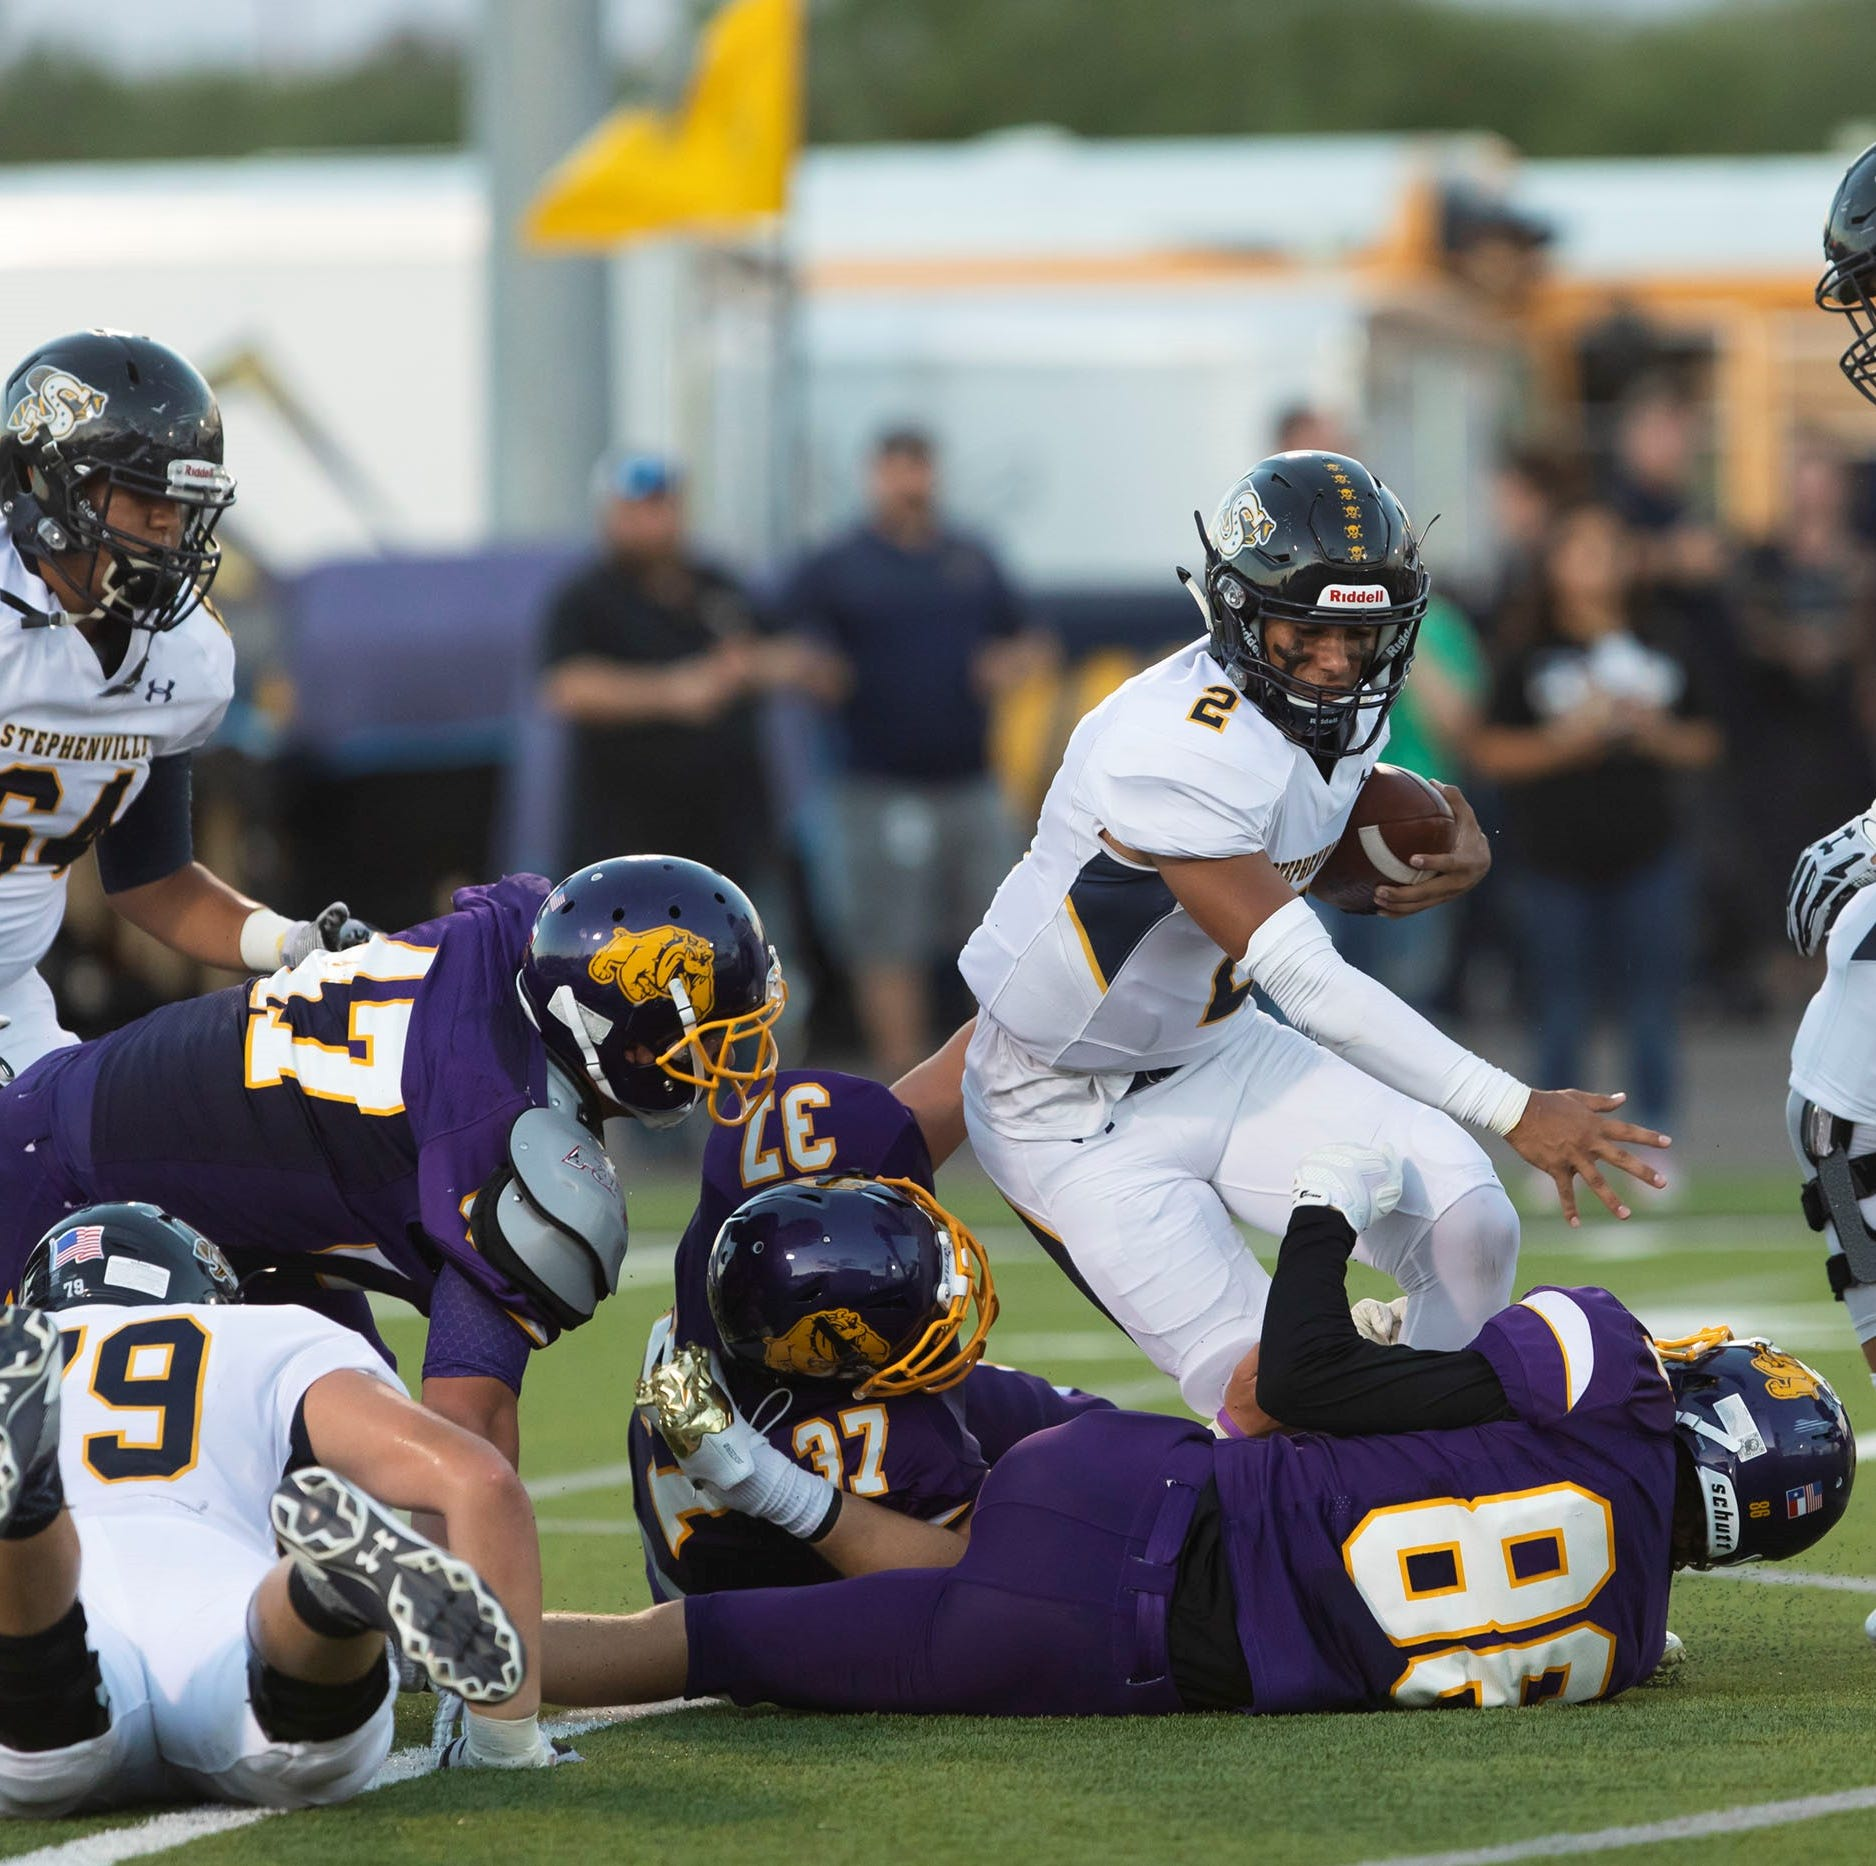 Texas High School Football Scores Sept. 13-15